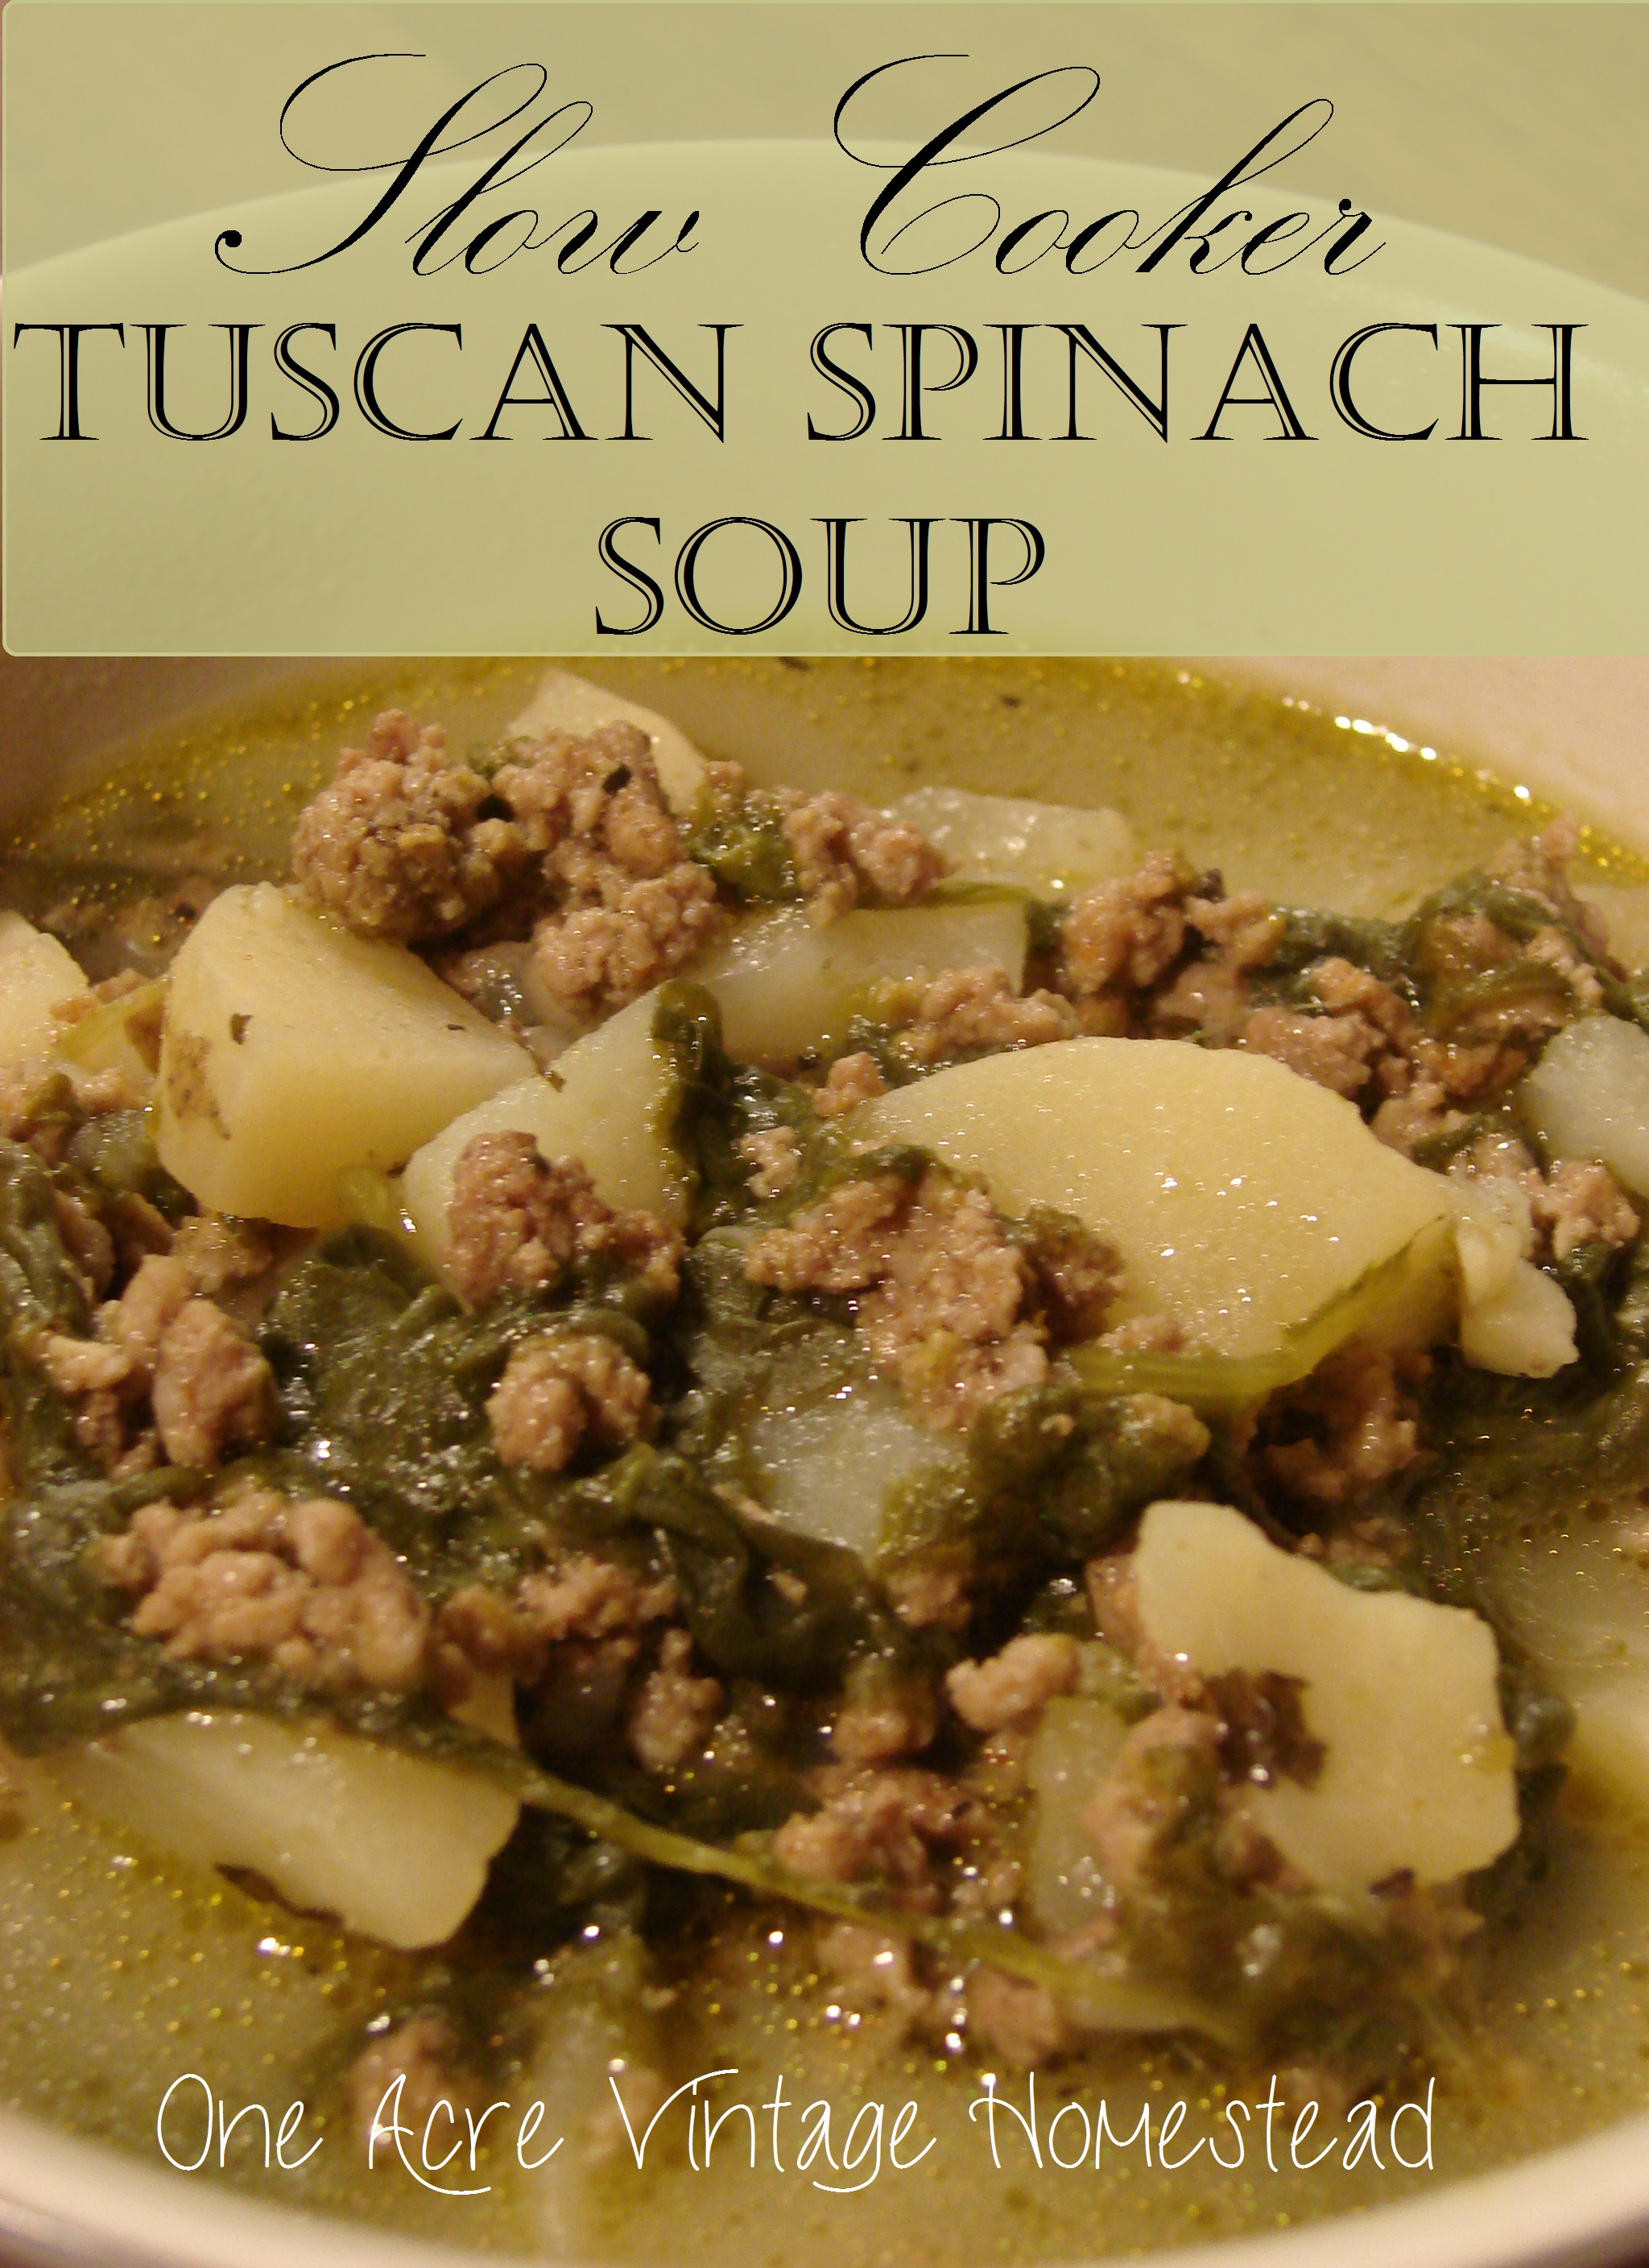 Slow Cooker Tuscan Spinach Soup - One Acre Vintage Homestead Recipe